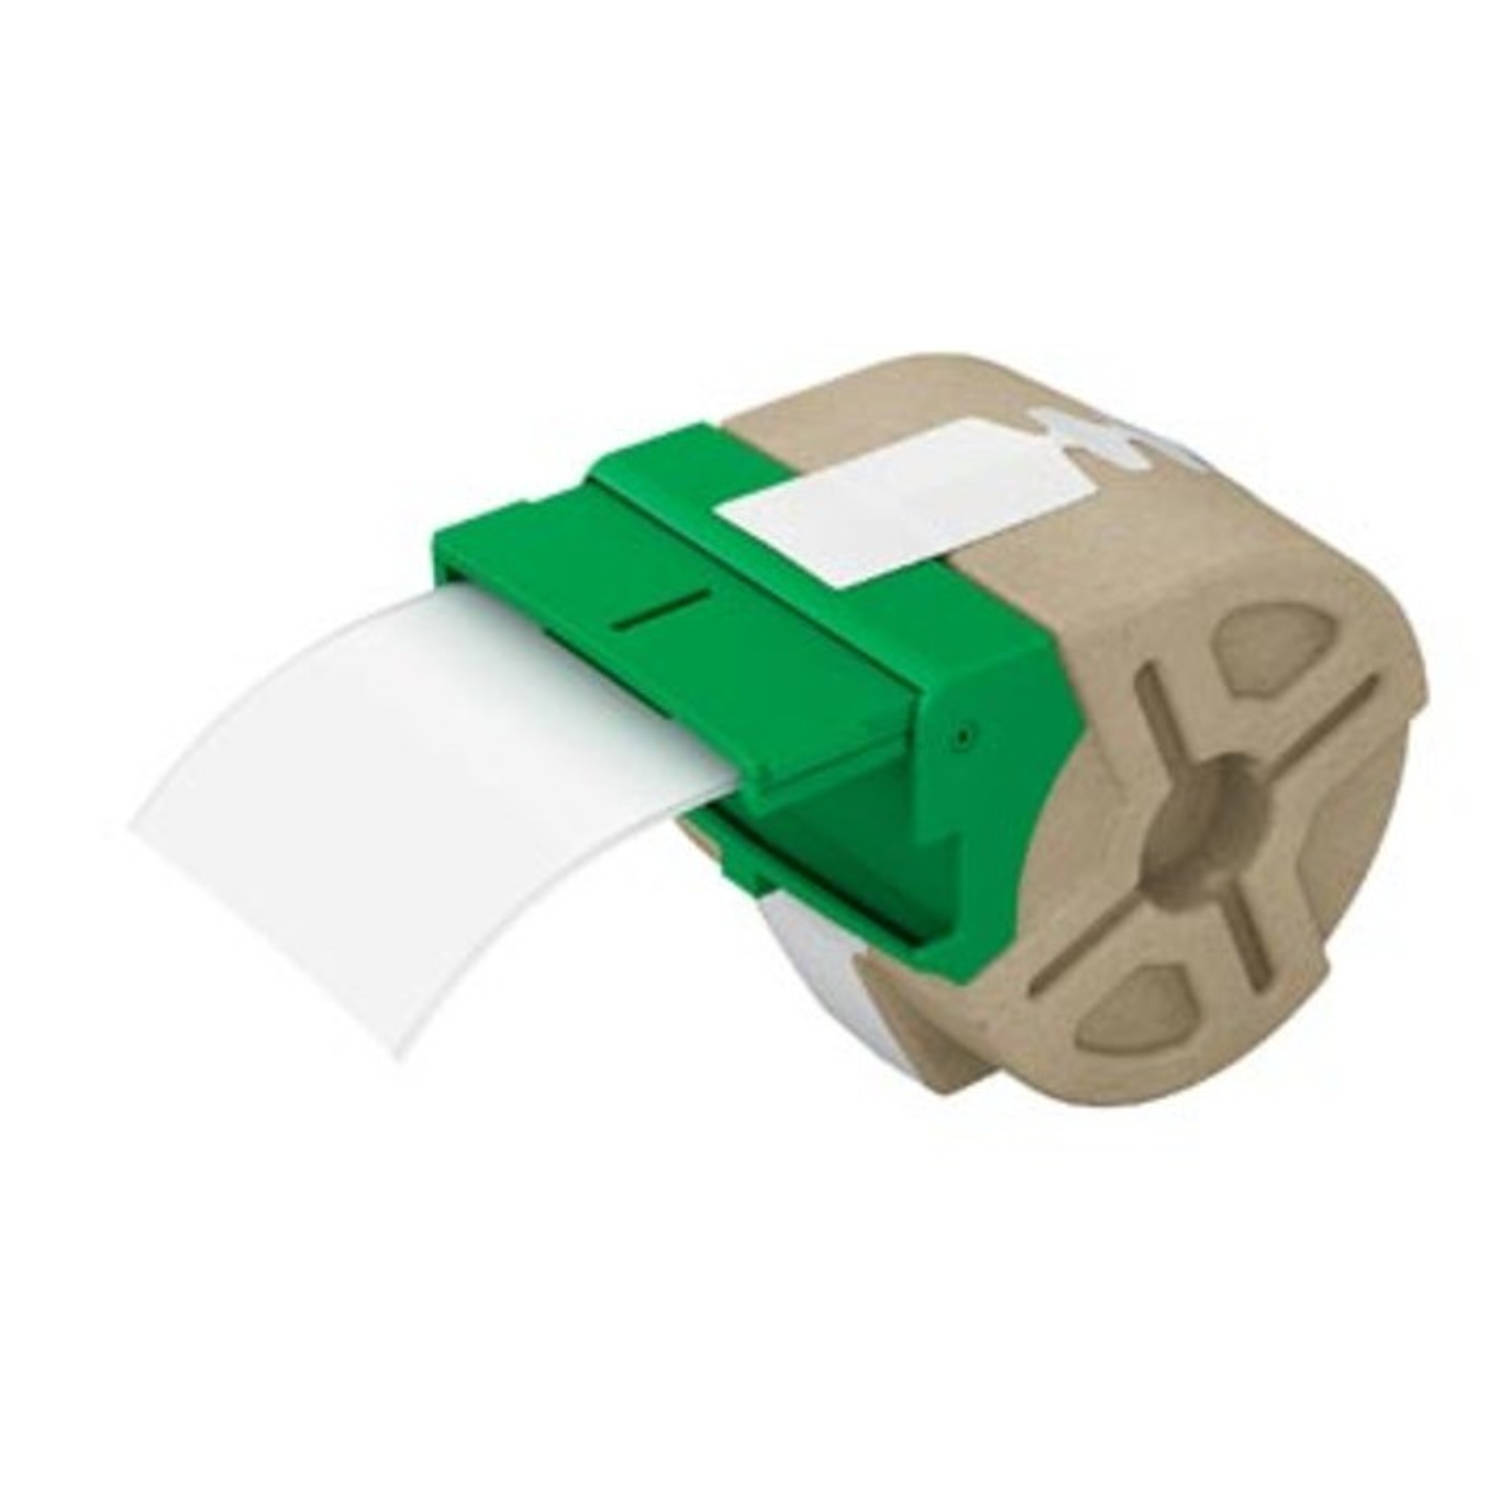 Leitz Icon doorlopende labelcartridge papier, voor labels tot 61 mm breed